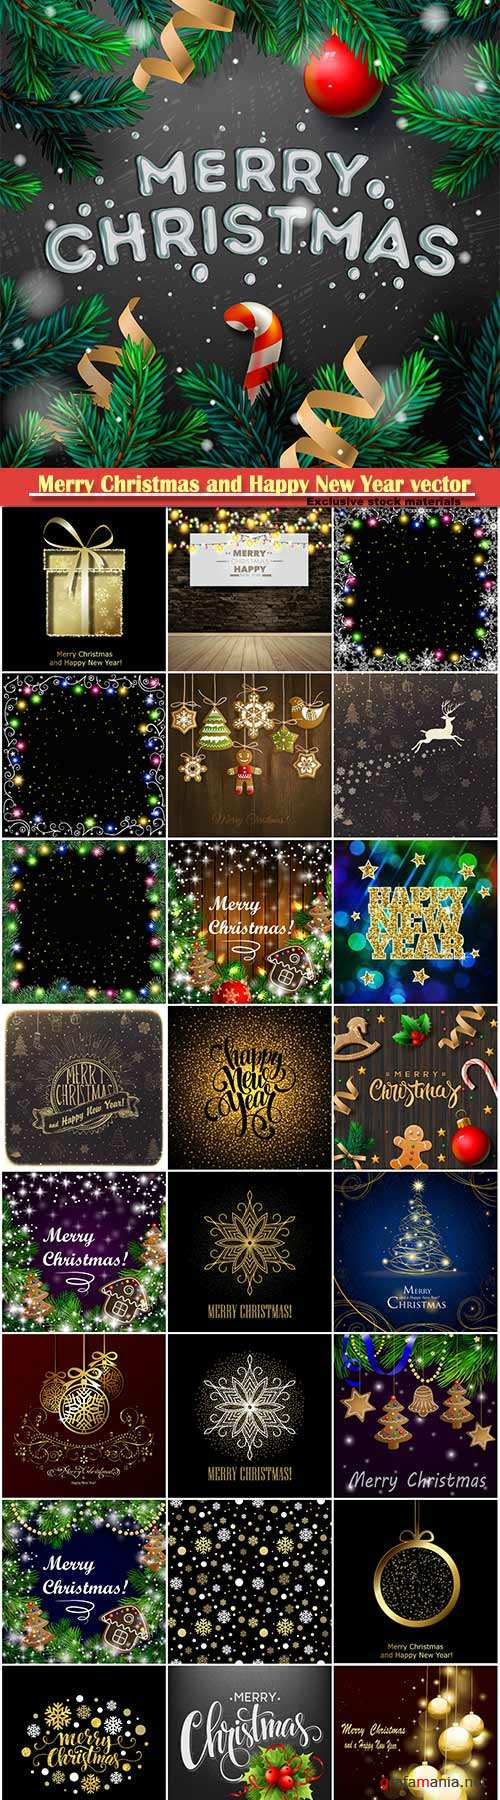 Merry Christmas and Happy New Year vector design # 24